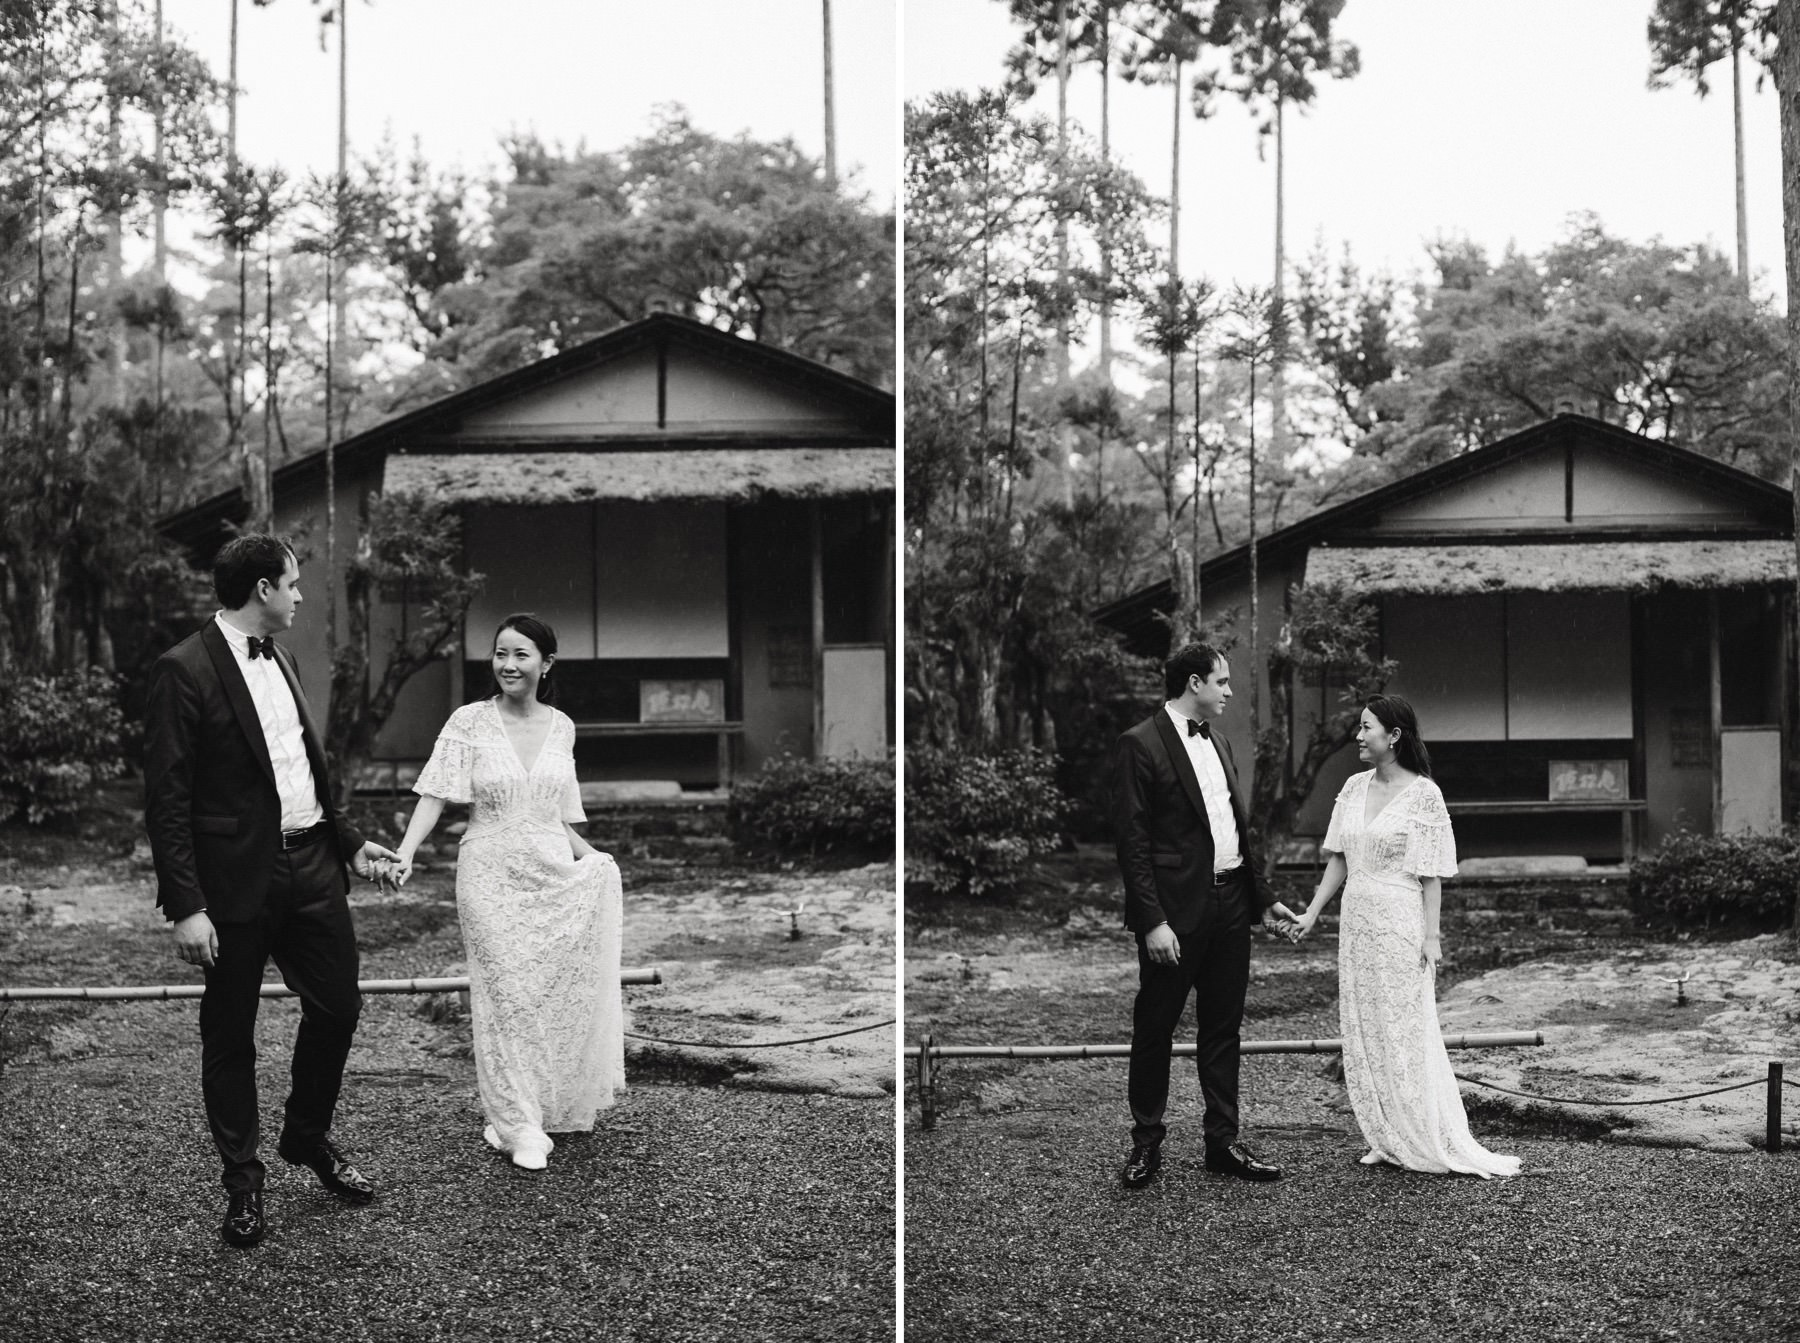 getting married in a Kyoto Japanese garden